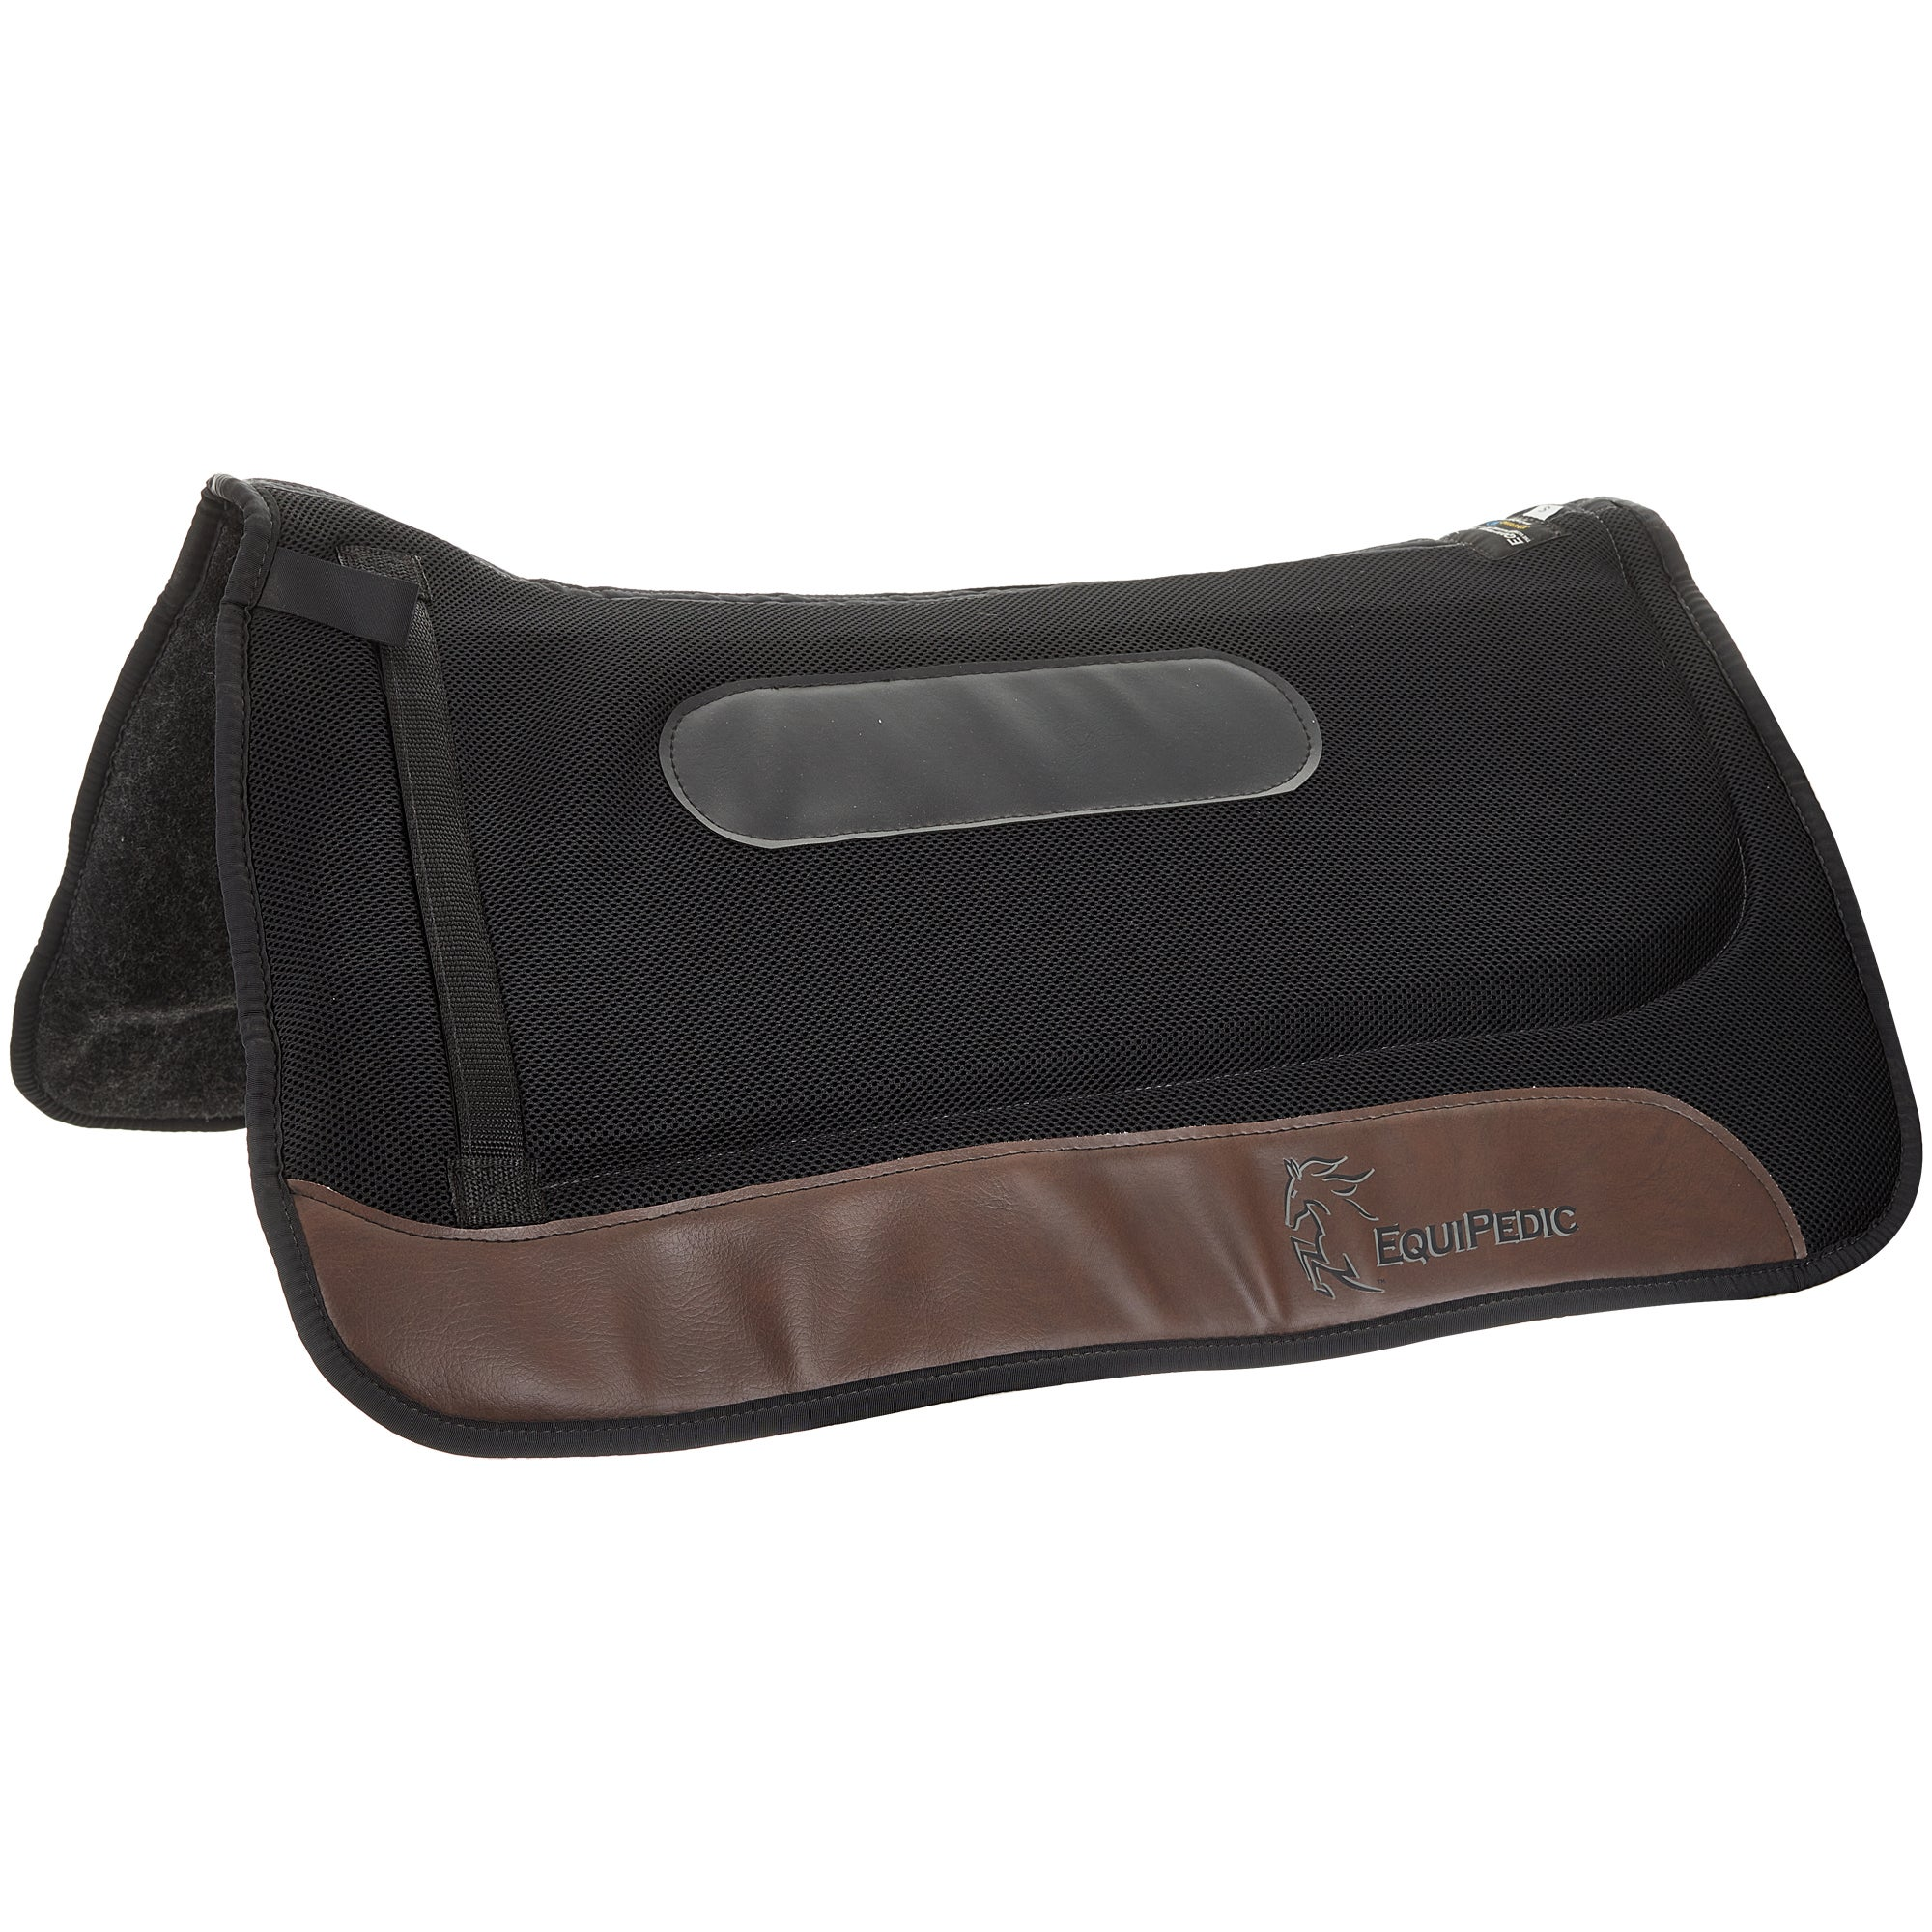 Equipedic square western saddle pad